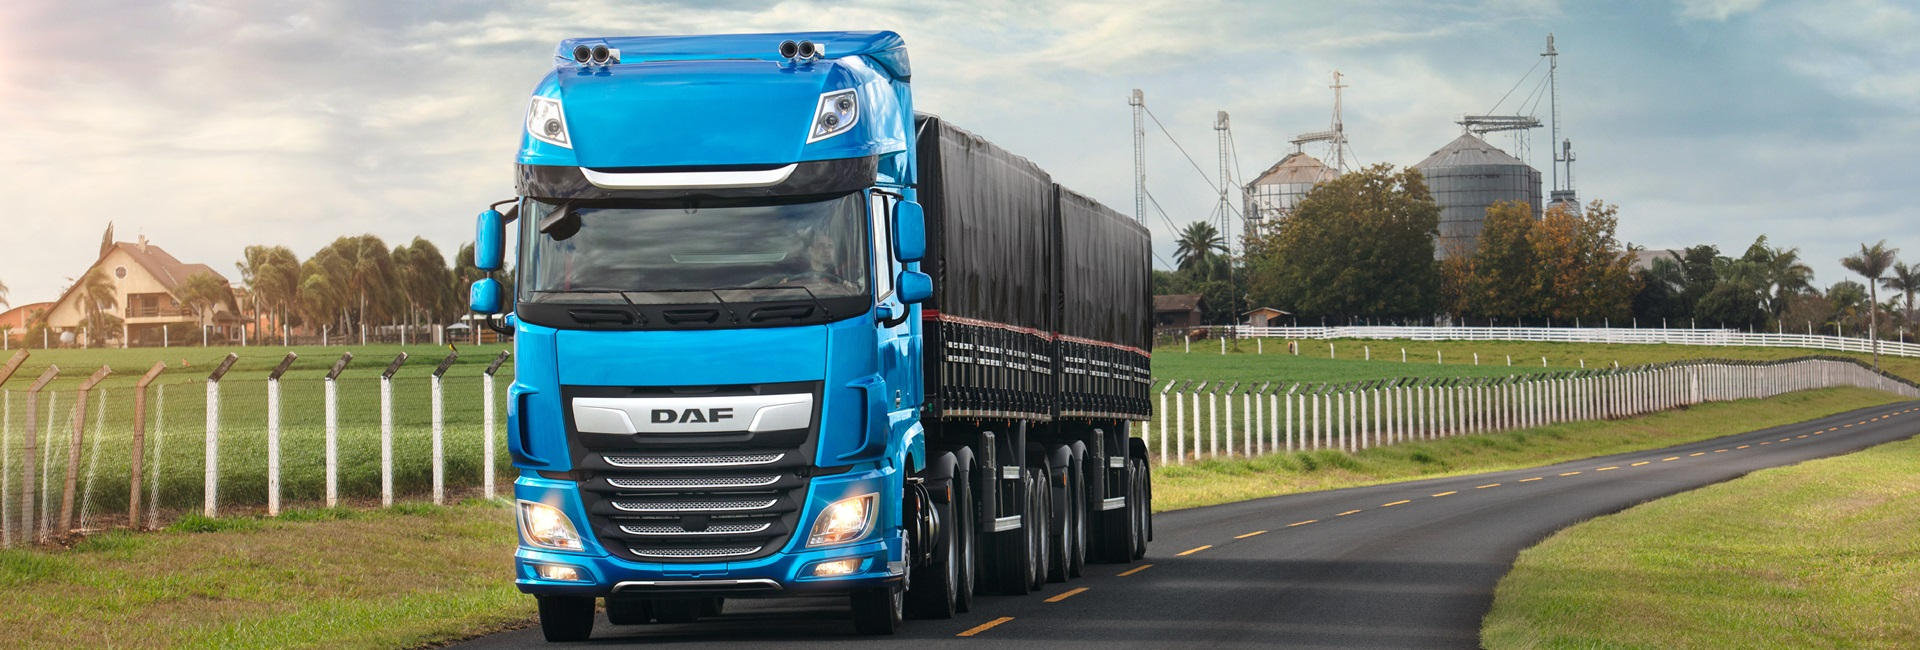 Novo-DAF-XF-Brasil-Hero-Header-Large-3840x-1